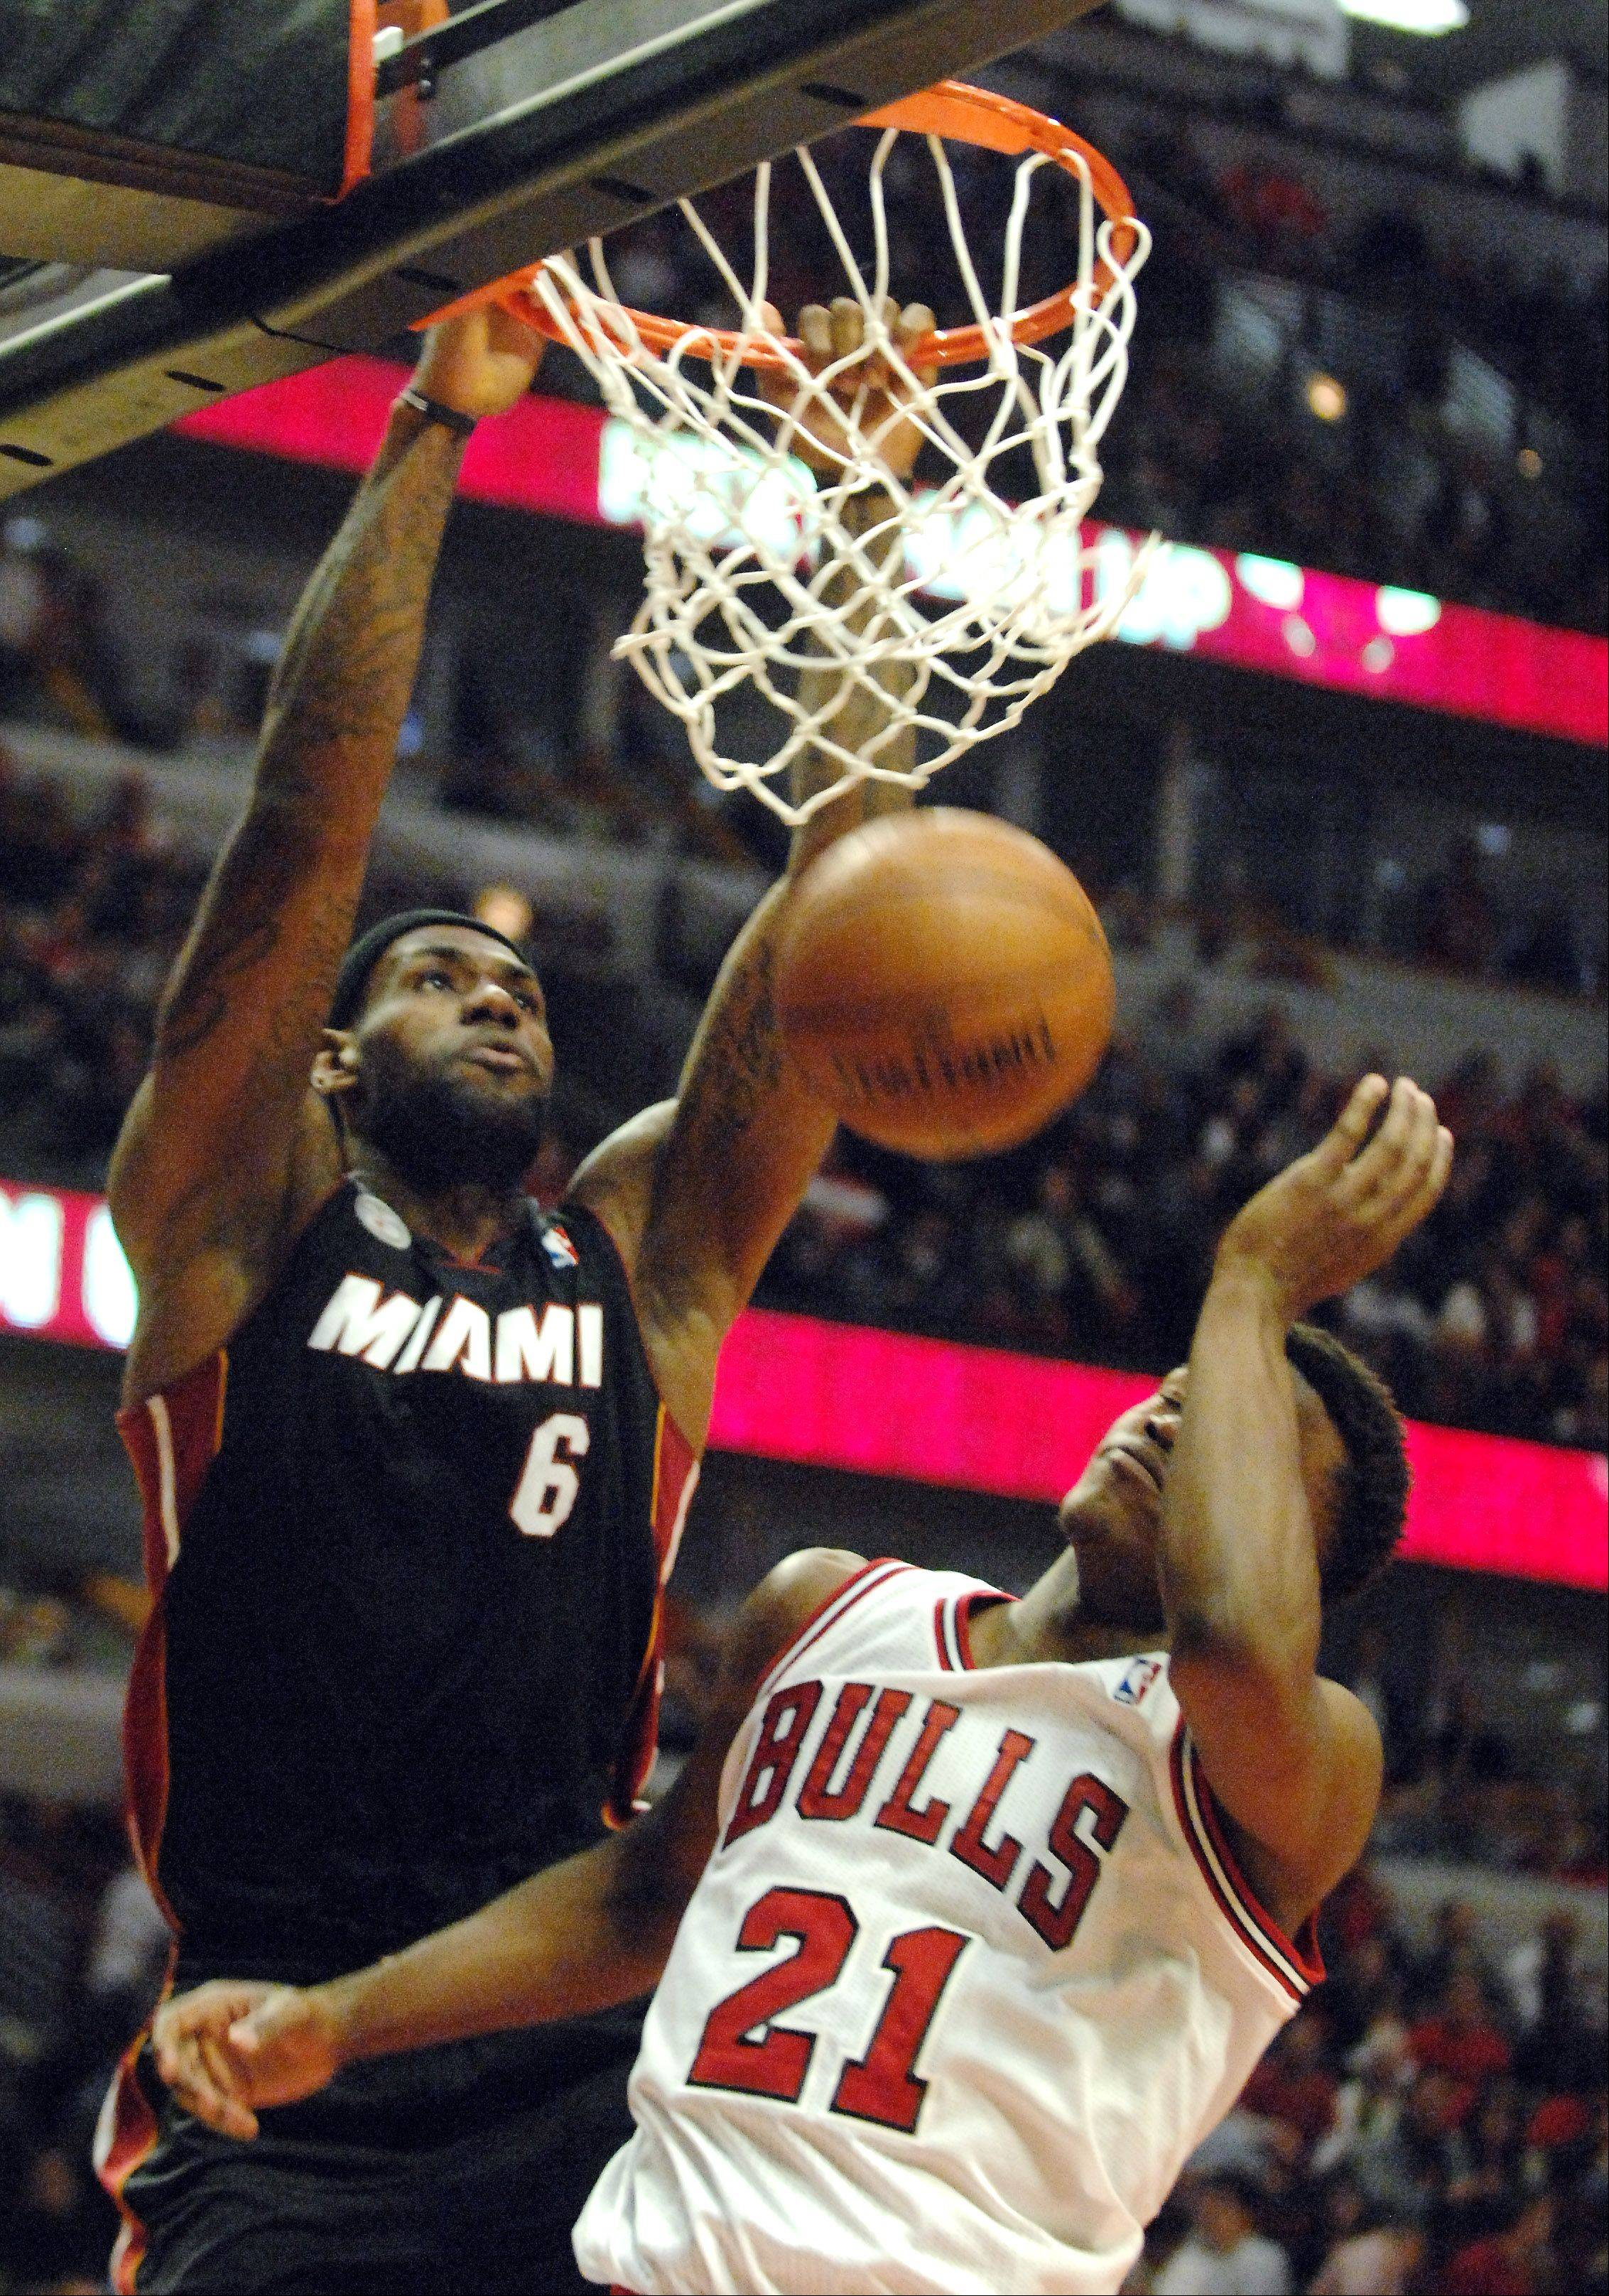 Miami Heat small forward LeBron James (6) dunks overChicago Bulls small forward Jimmy Butler (21) during game 3 of the NBA Eastern Conference semifinals at the United Center in Chicago Friday.